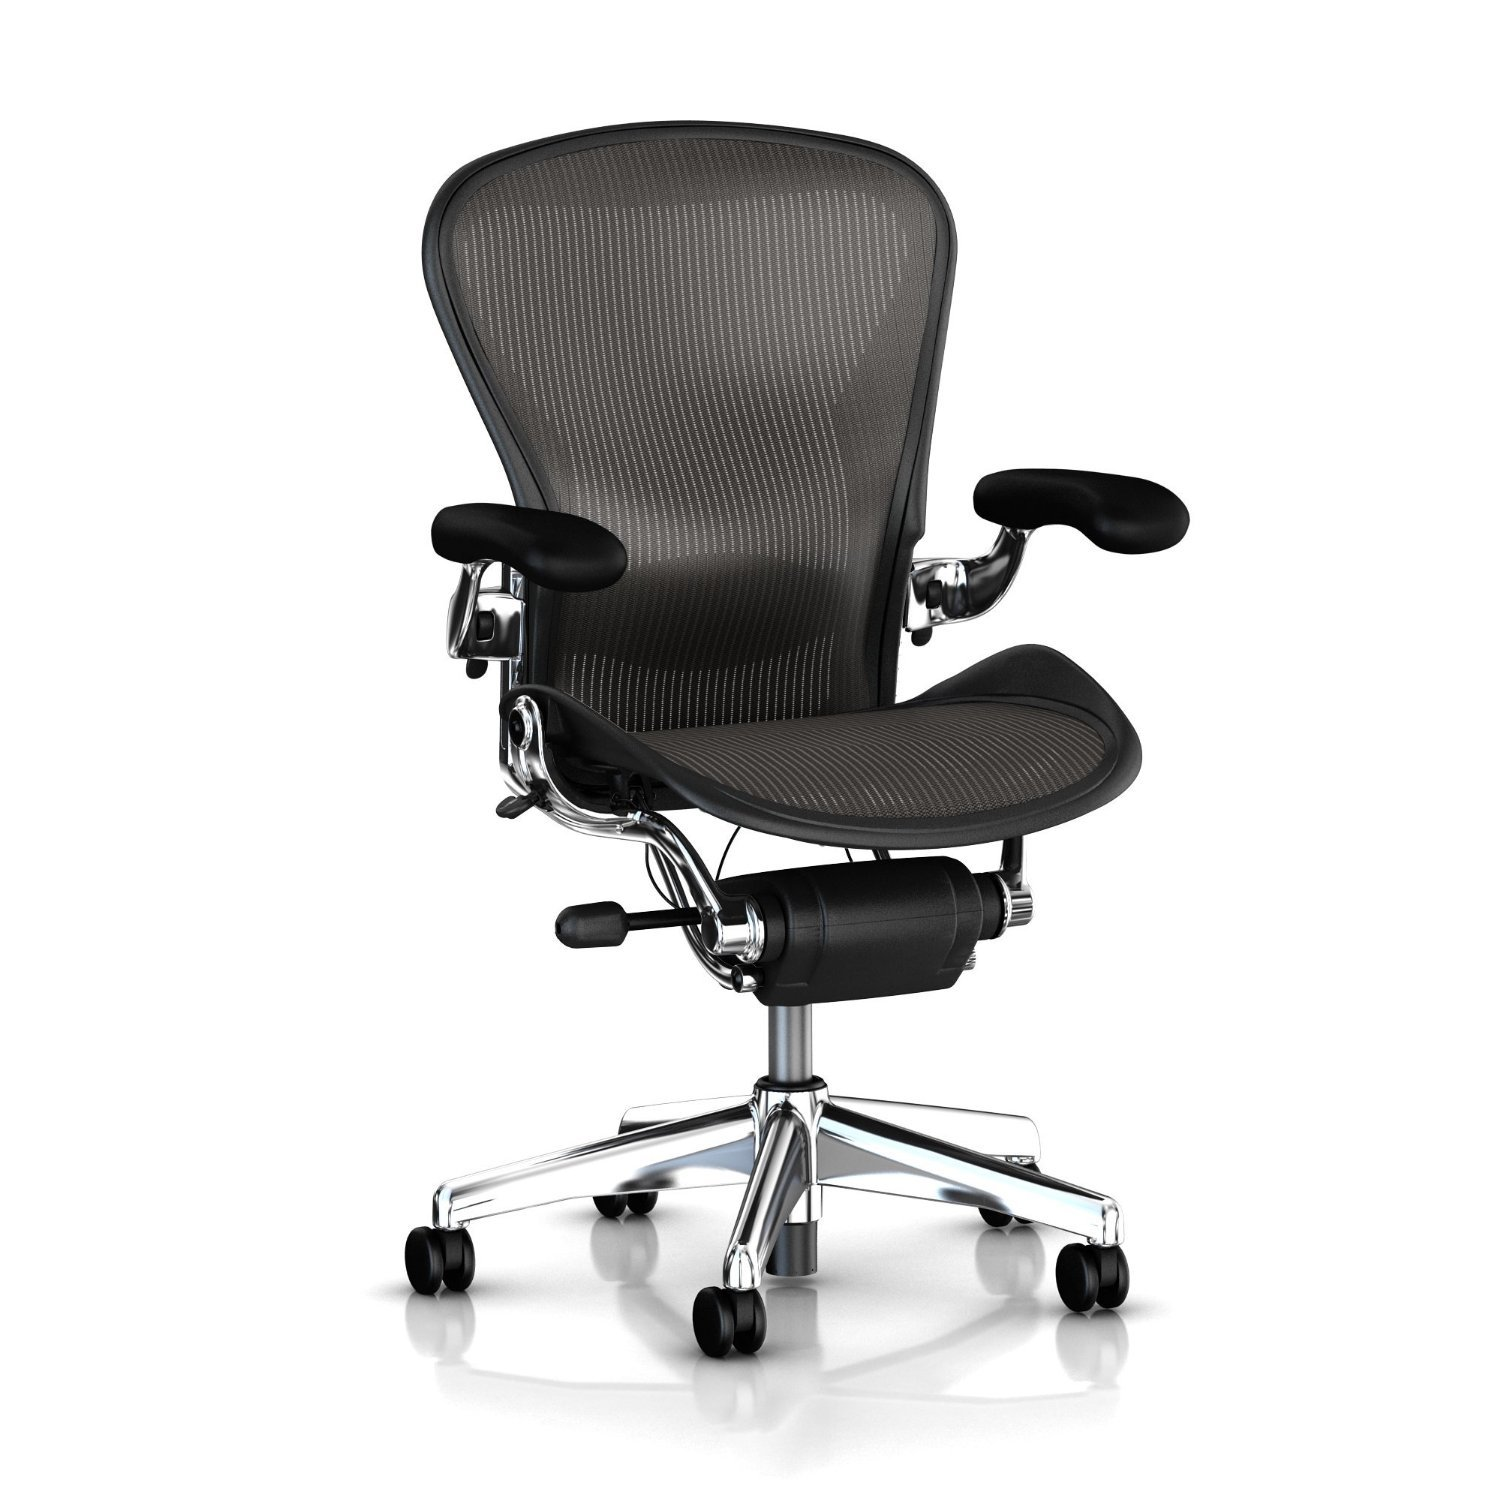 Herman Miller Executive Aeron Task Chair: Highly Adjustable w/PostureFit Lumbar Support - Fully Adjustable Leather Arms - Tilt Limiter - Size B - Standard Carpet Casters - Polished Aluminum Frame/Carbon Classic Pellicle